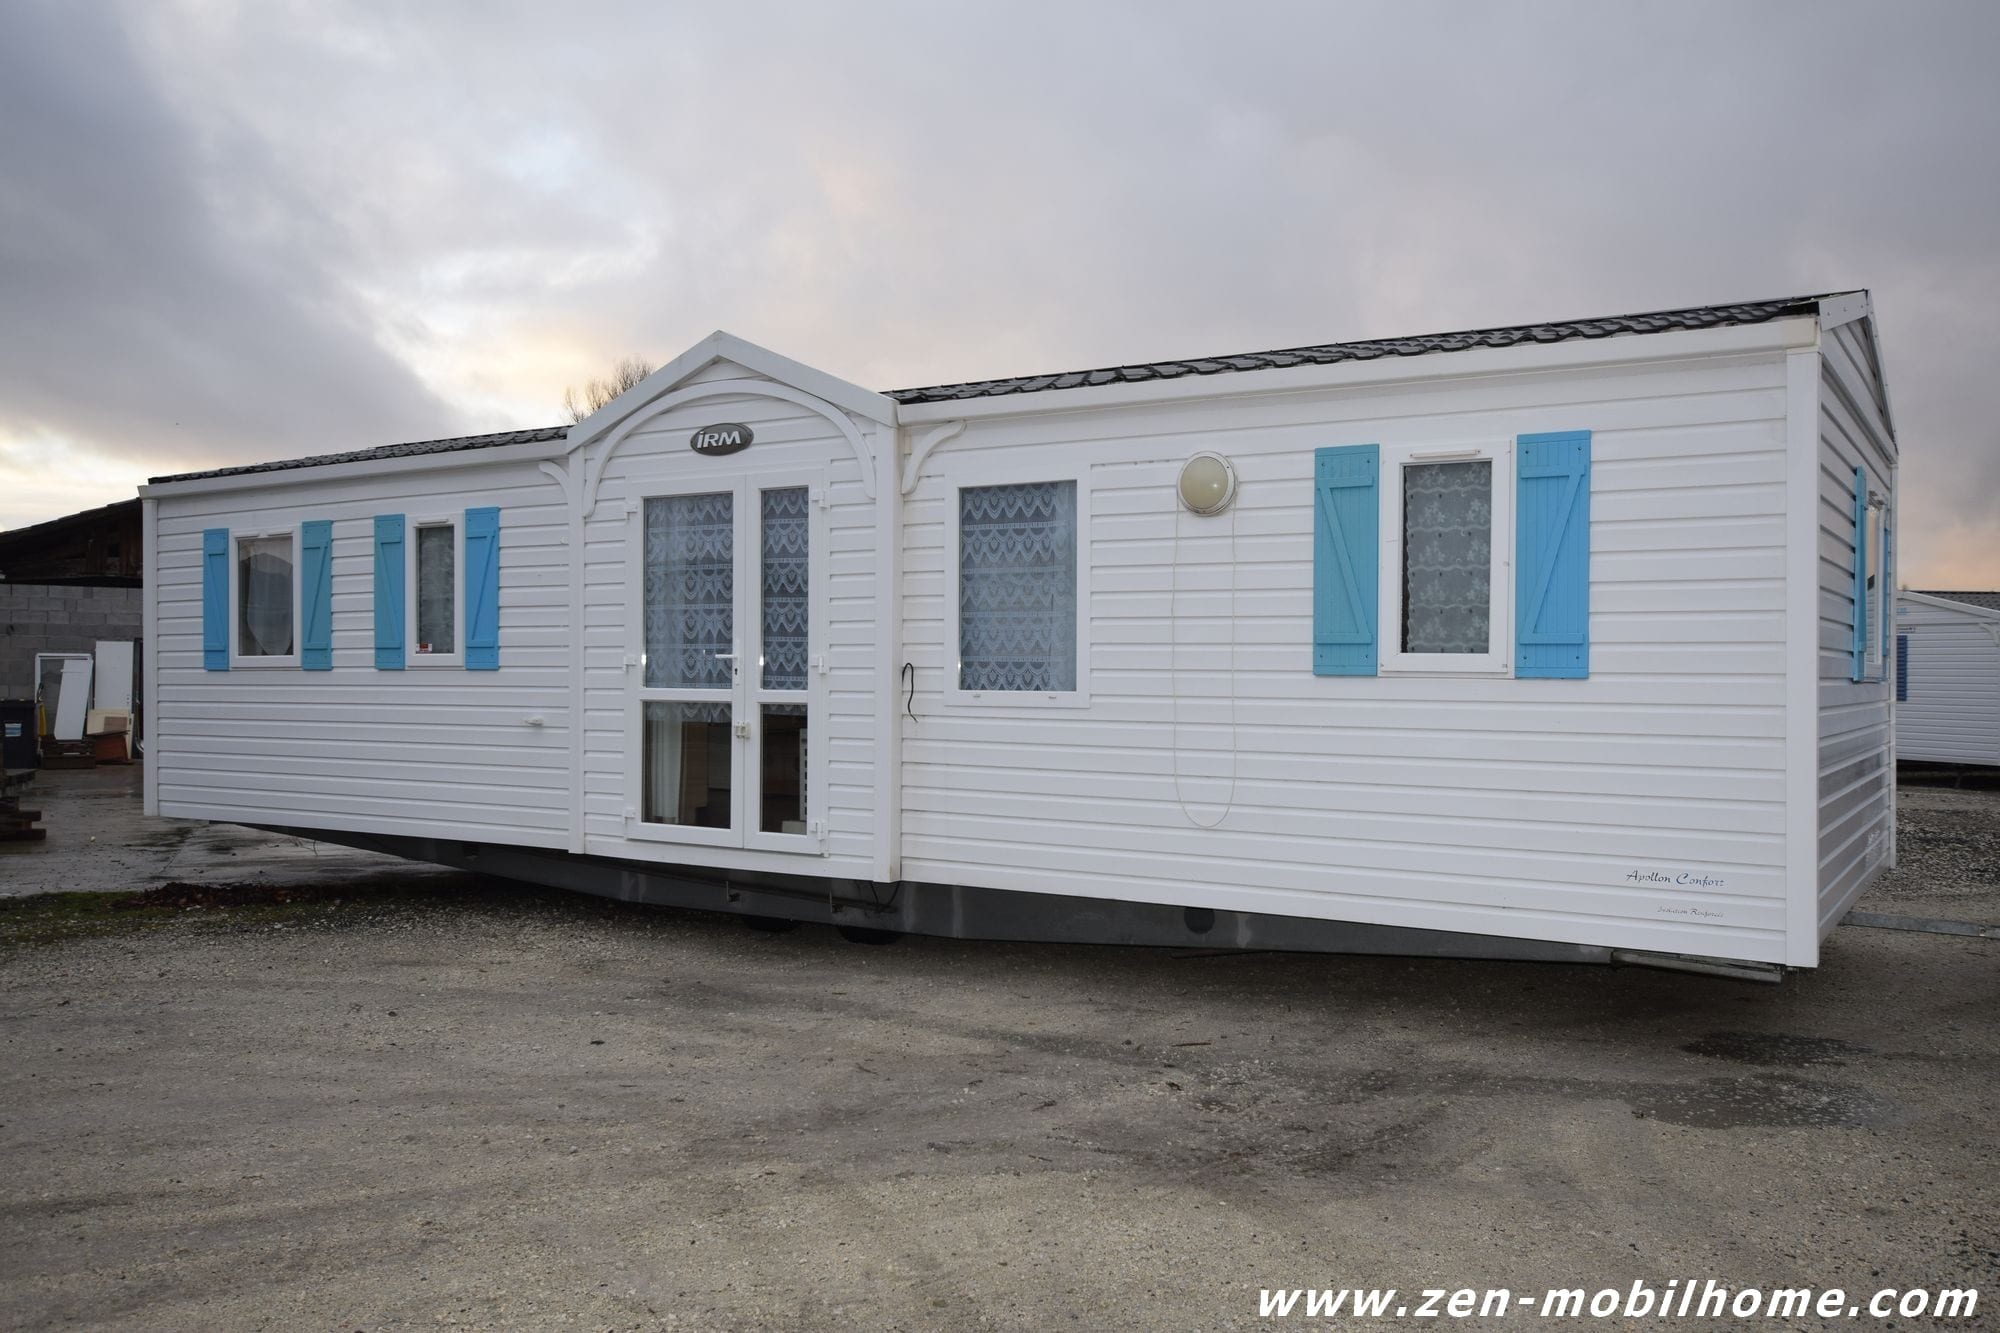 irm apollon 2007 mobil home d 39 occasion 17 000 zen mobil homes. Black Bedroom Furniture Sets. Home Design Ideas